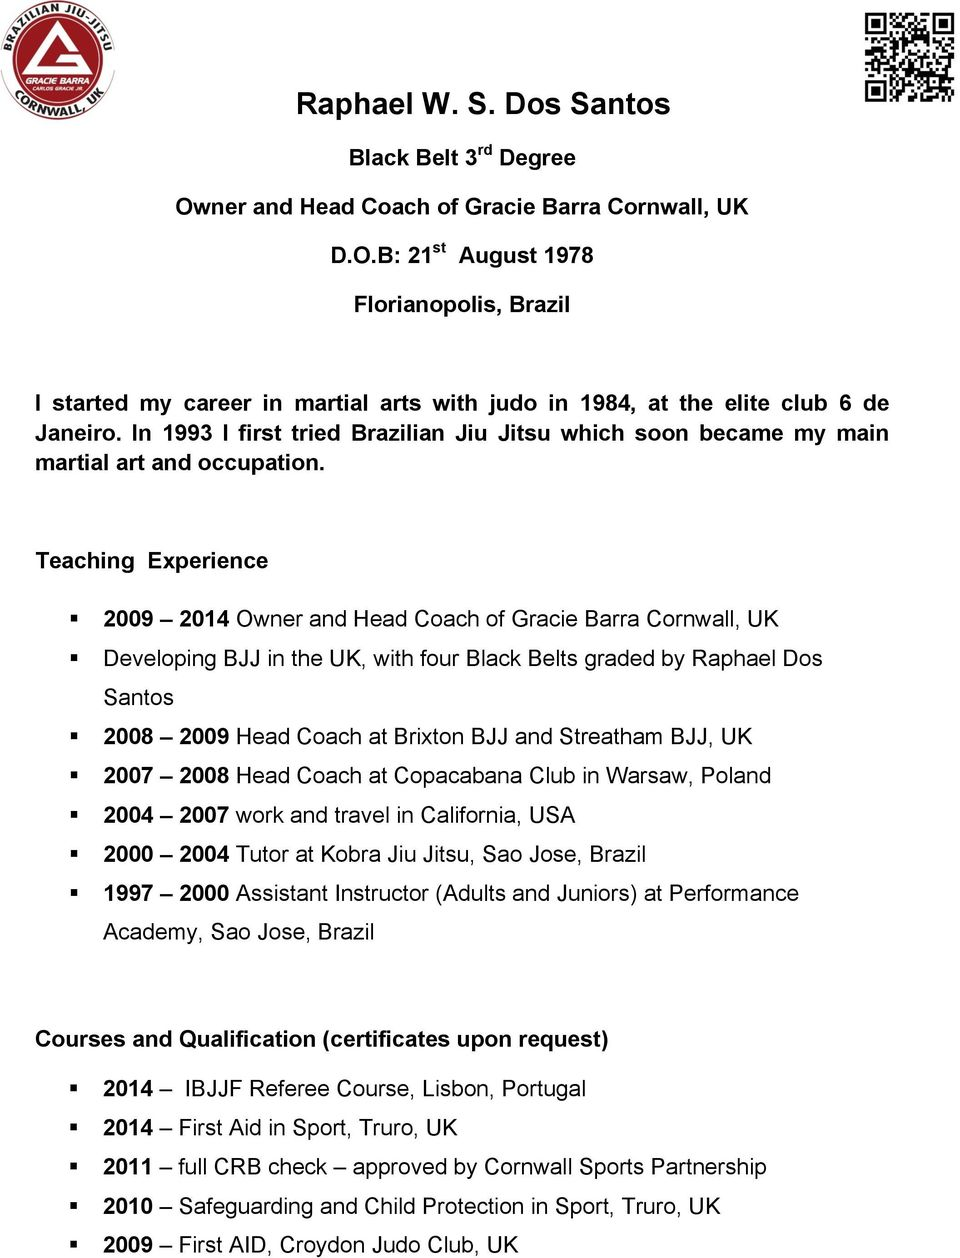 Teaching Experience 2009 2014 Owner and Head Coach of Gracie Barra Cornwall, UK Developing BJJ in the UK, with four Black Belts graded by Raphael Dos Santos 2008 2009 Head Coach at Brixton BJJ and